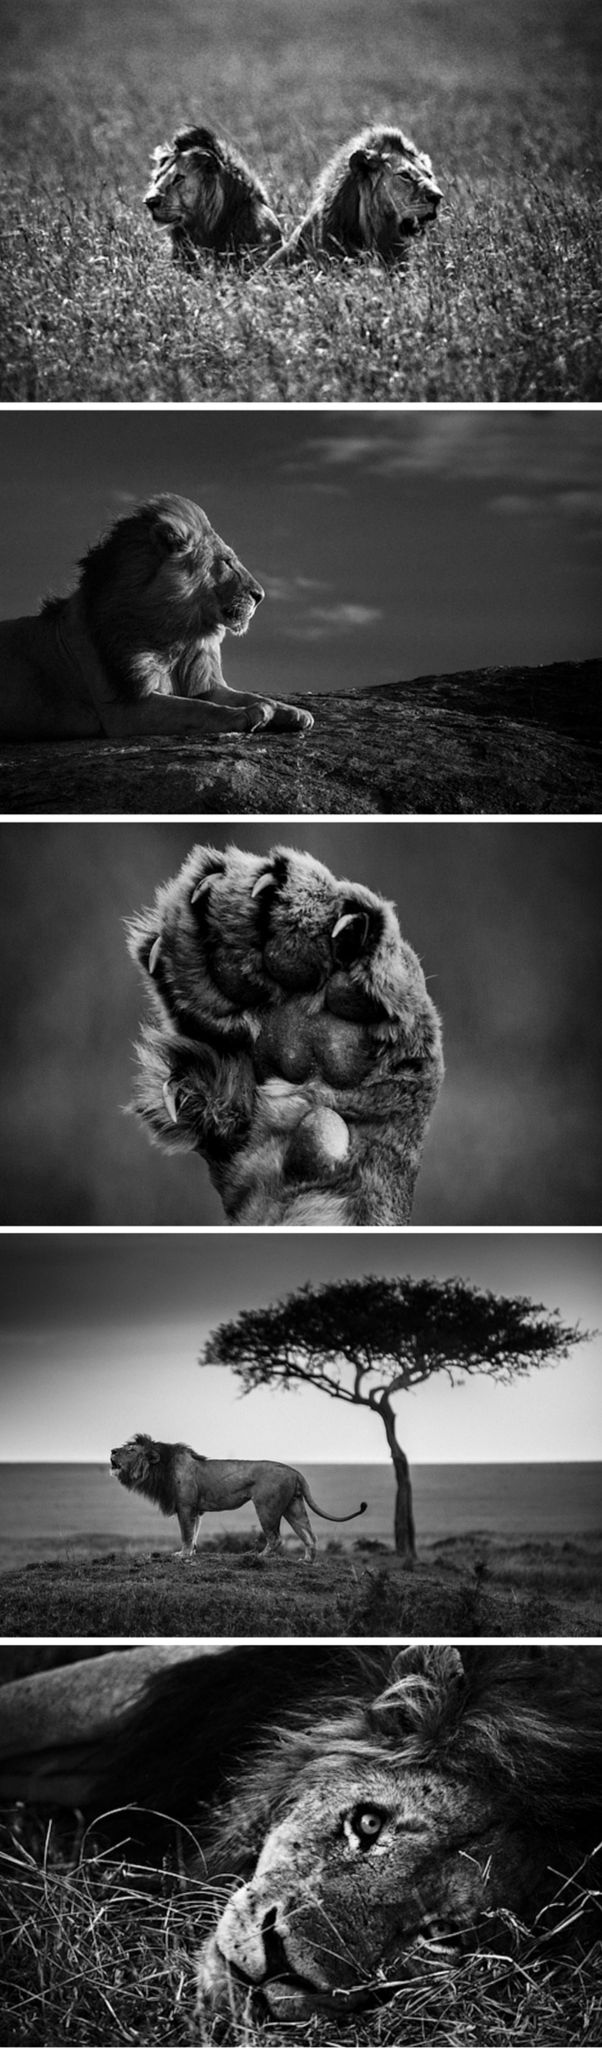 Laurent Baheux, wildlife photographer, shares his favorite photos of his favorite big mammal, the lion. More stunning photos when you click through.